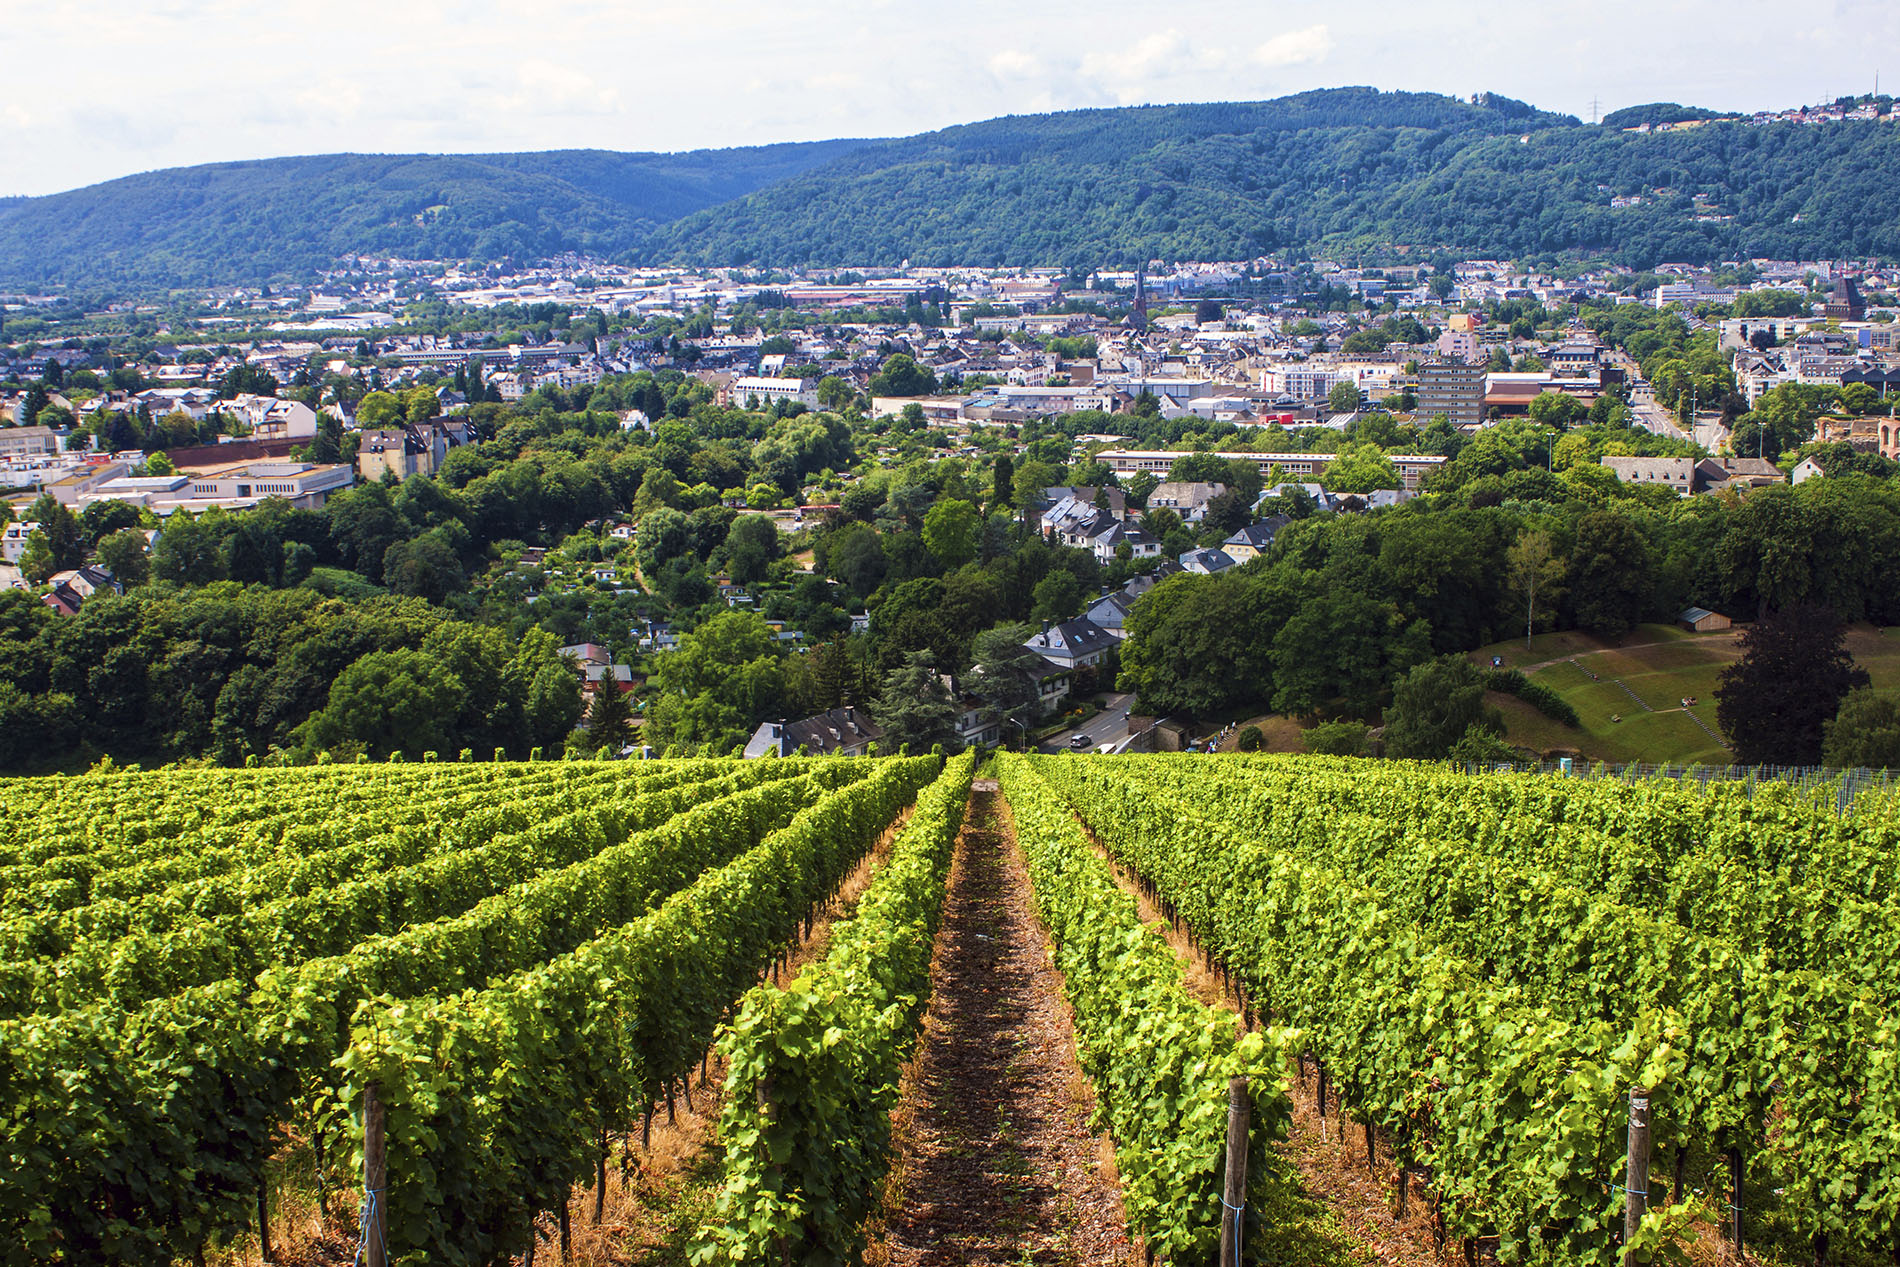 Uniform vineyard rows overlooking the gorgeous city of Trier, Germany